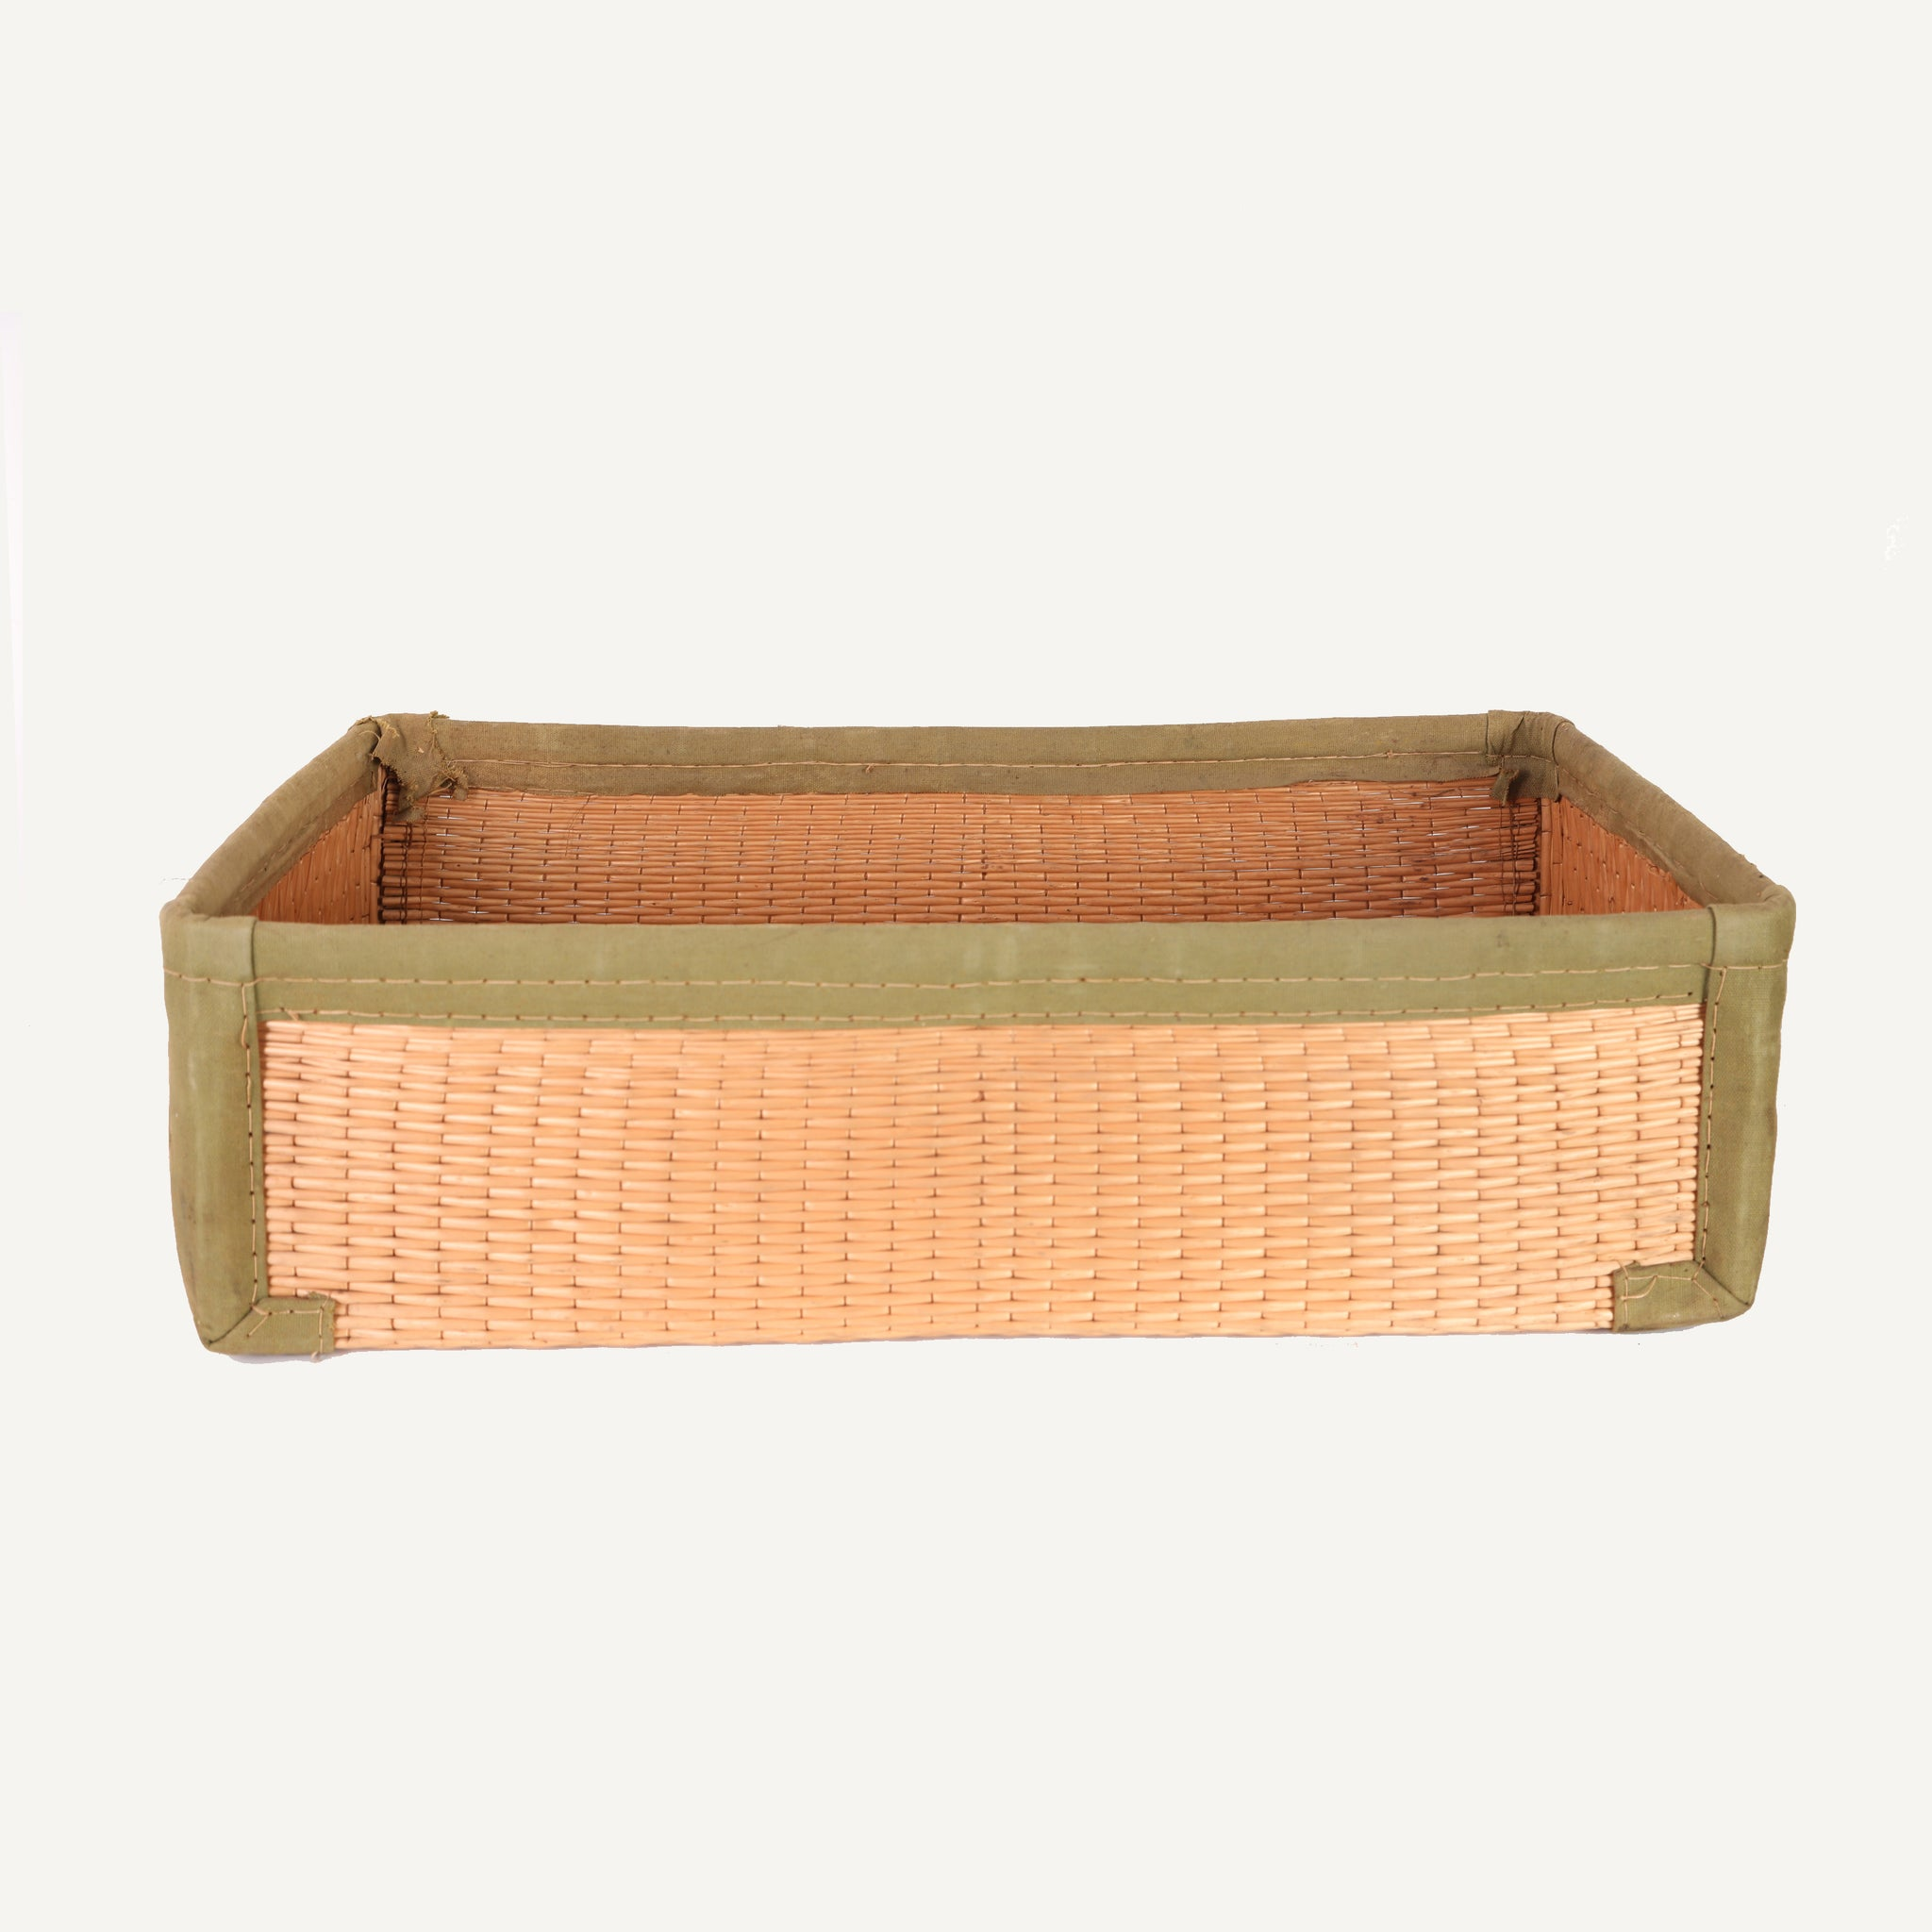 ANTIQUE REED TRAVELING BASKET